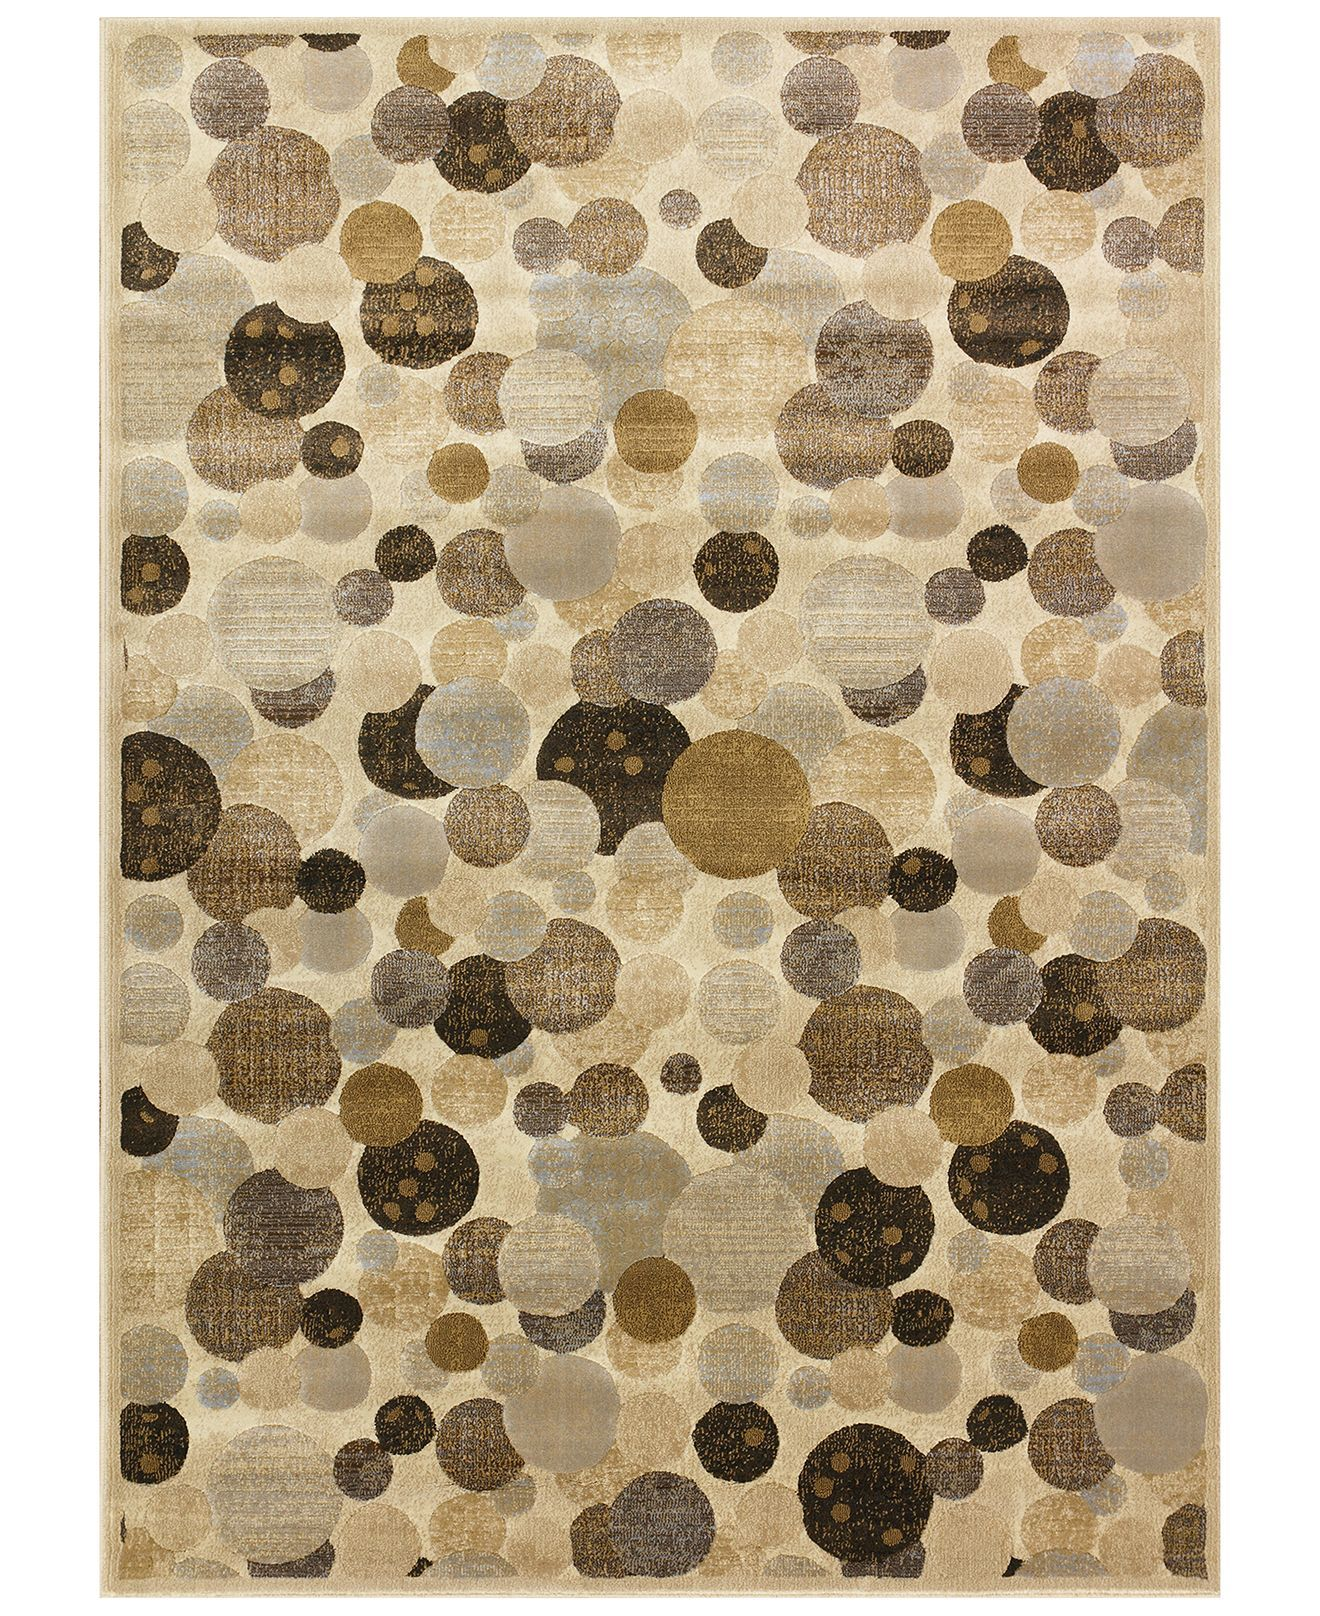 "Kenneth Mink Area Rug, Kingston WW1 Beige 7'10"" X 10'10"